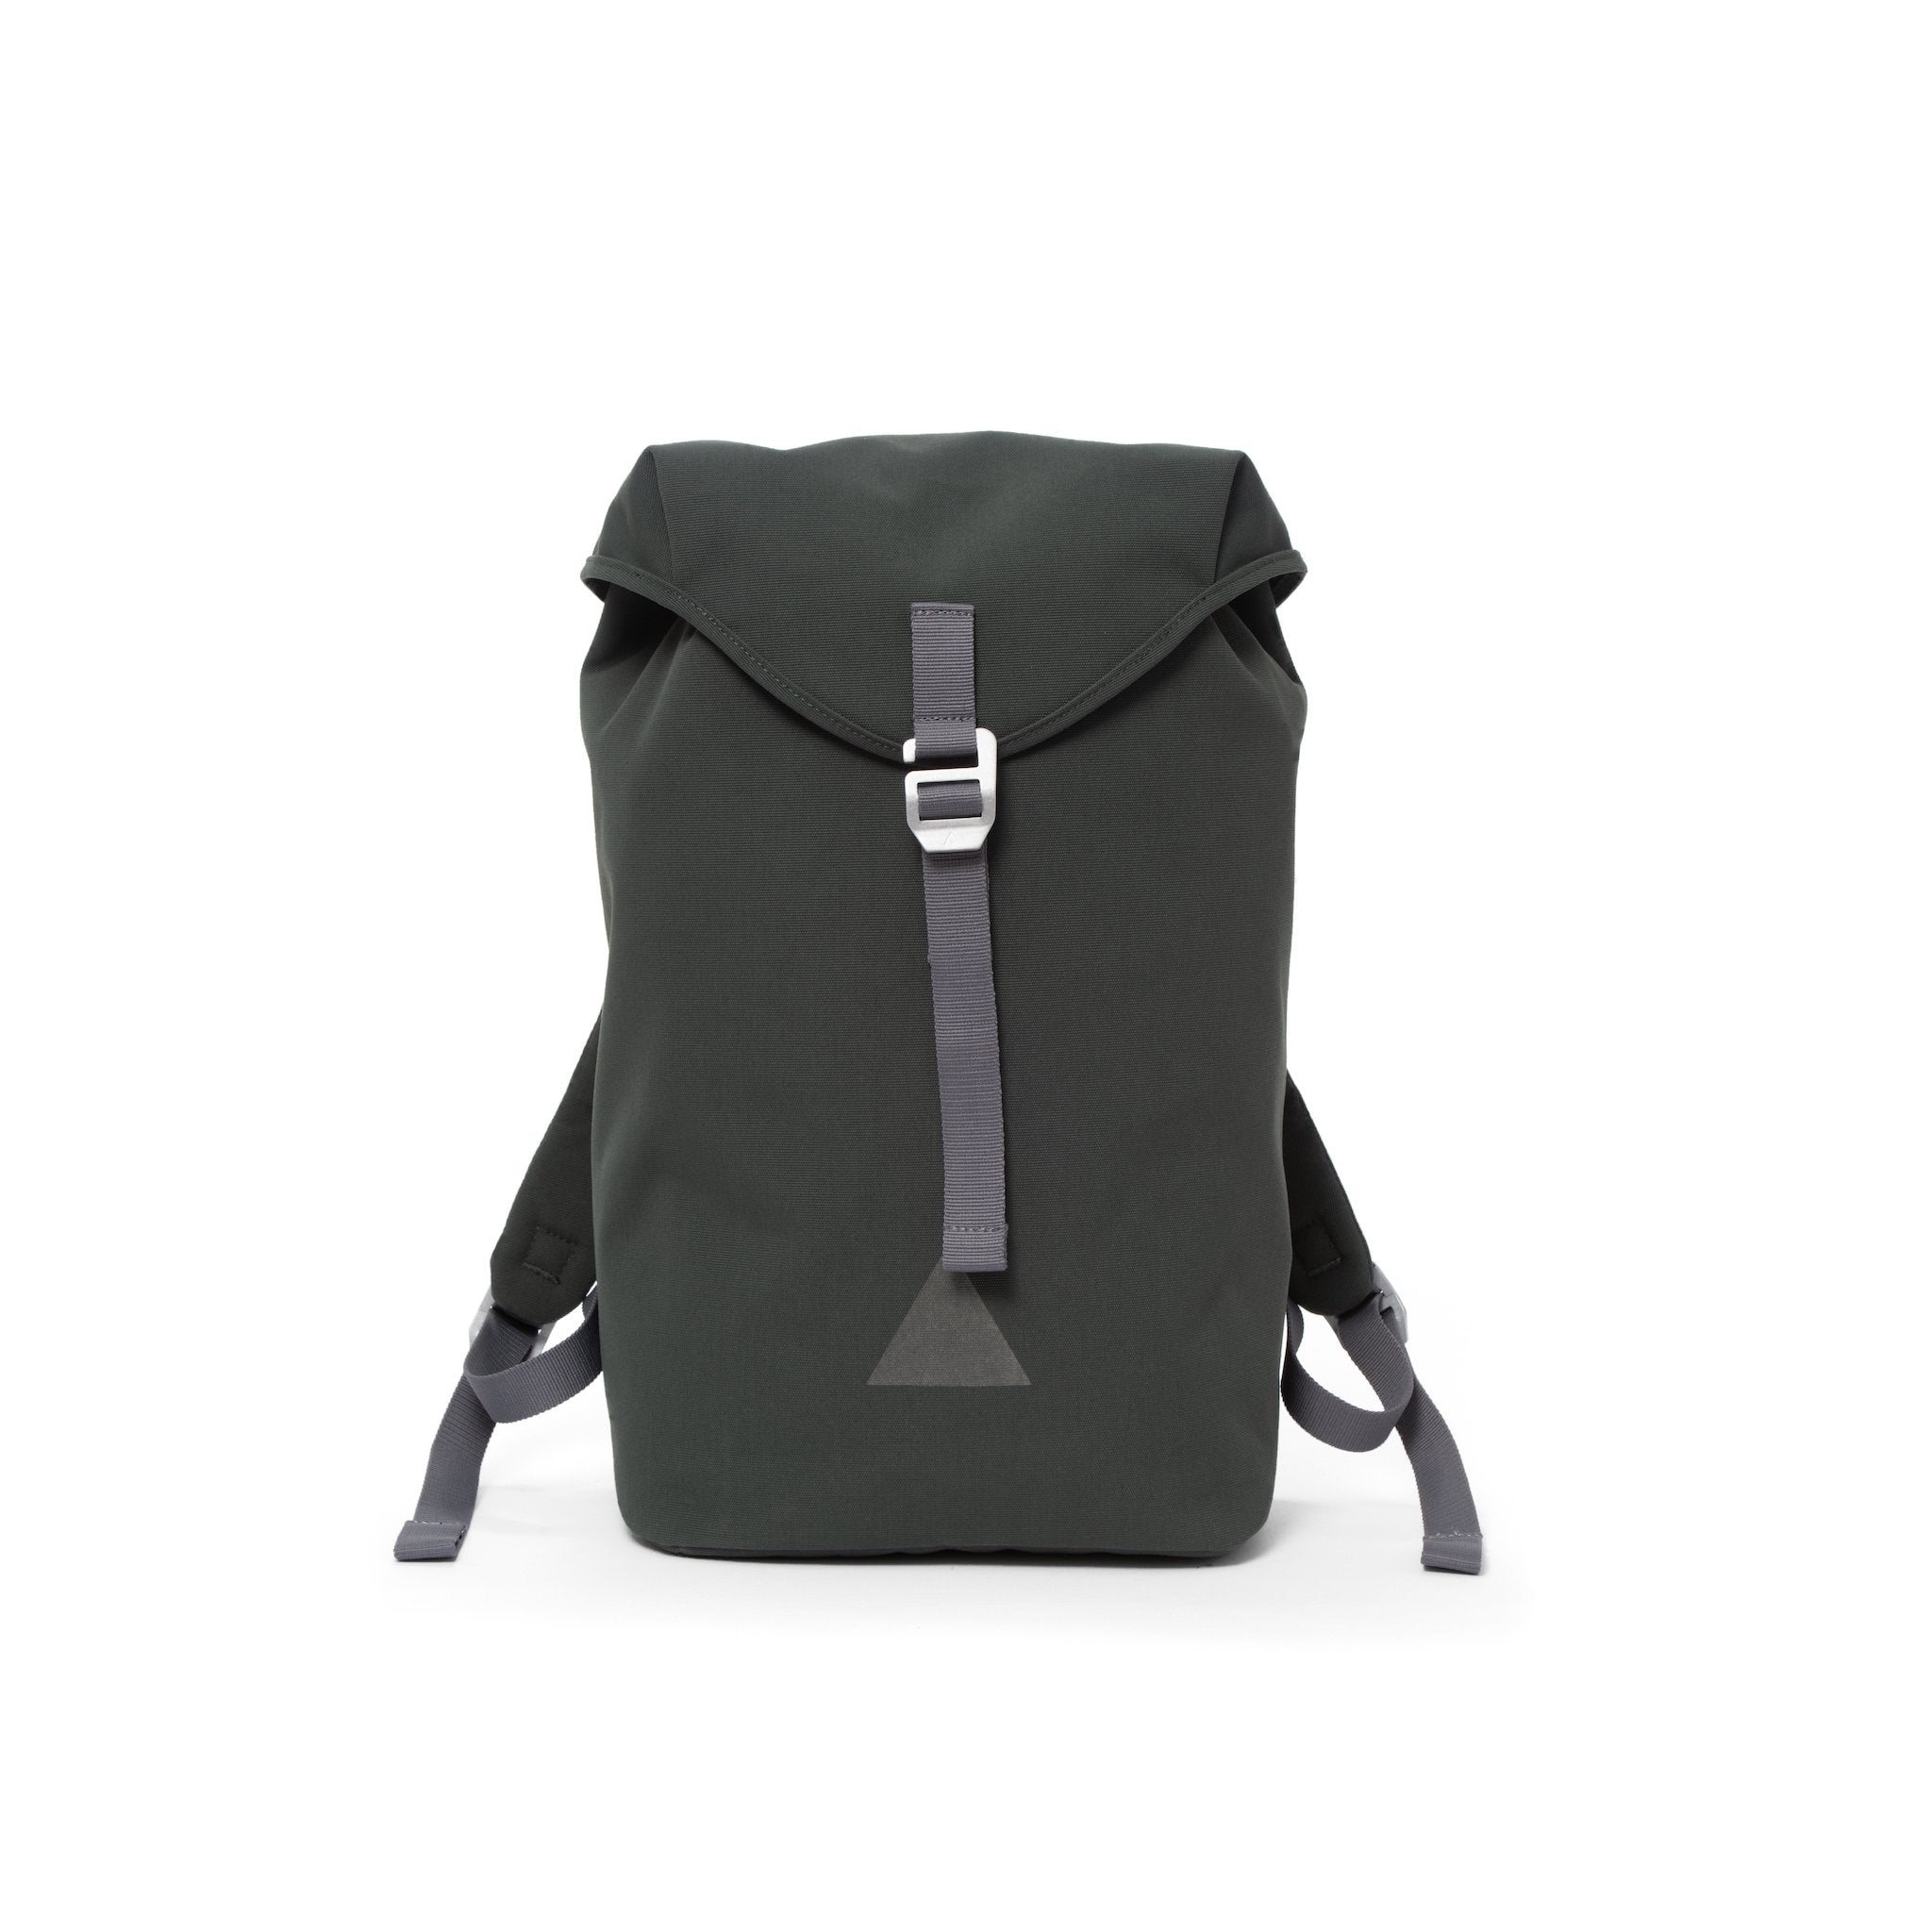 Grey canvas backpack with a flap closure and triangle logo.